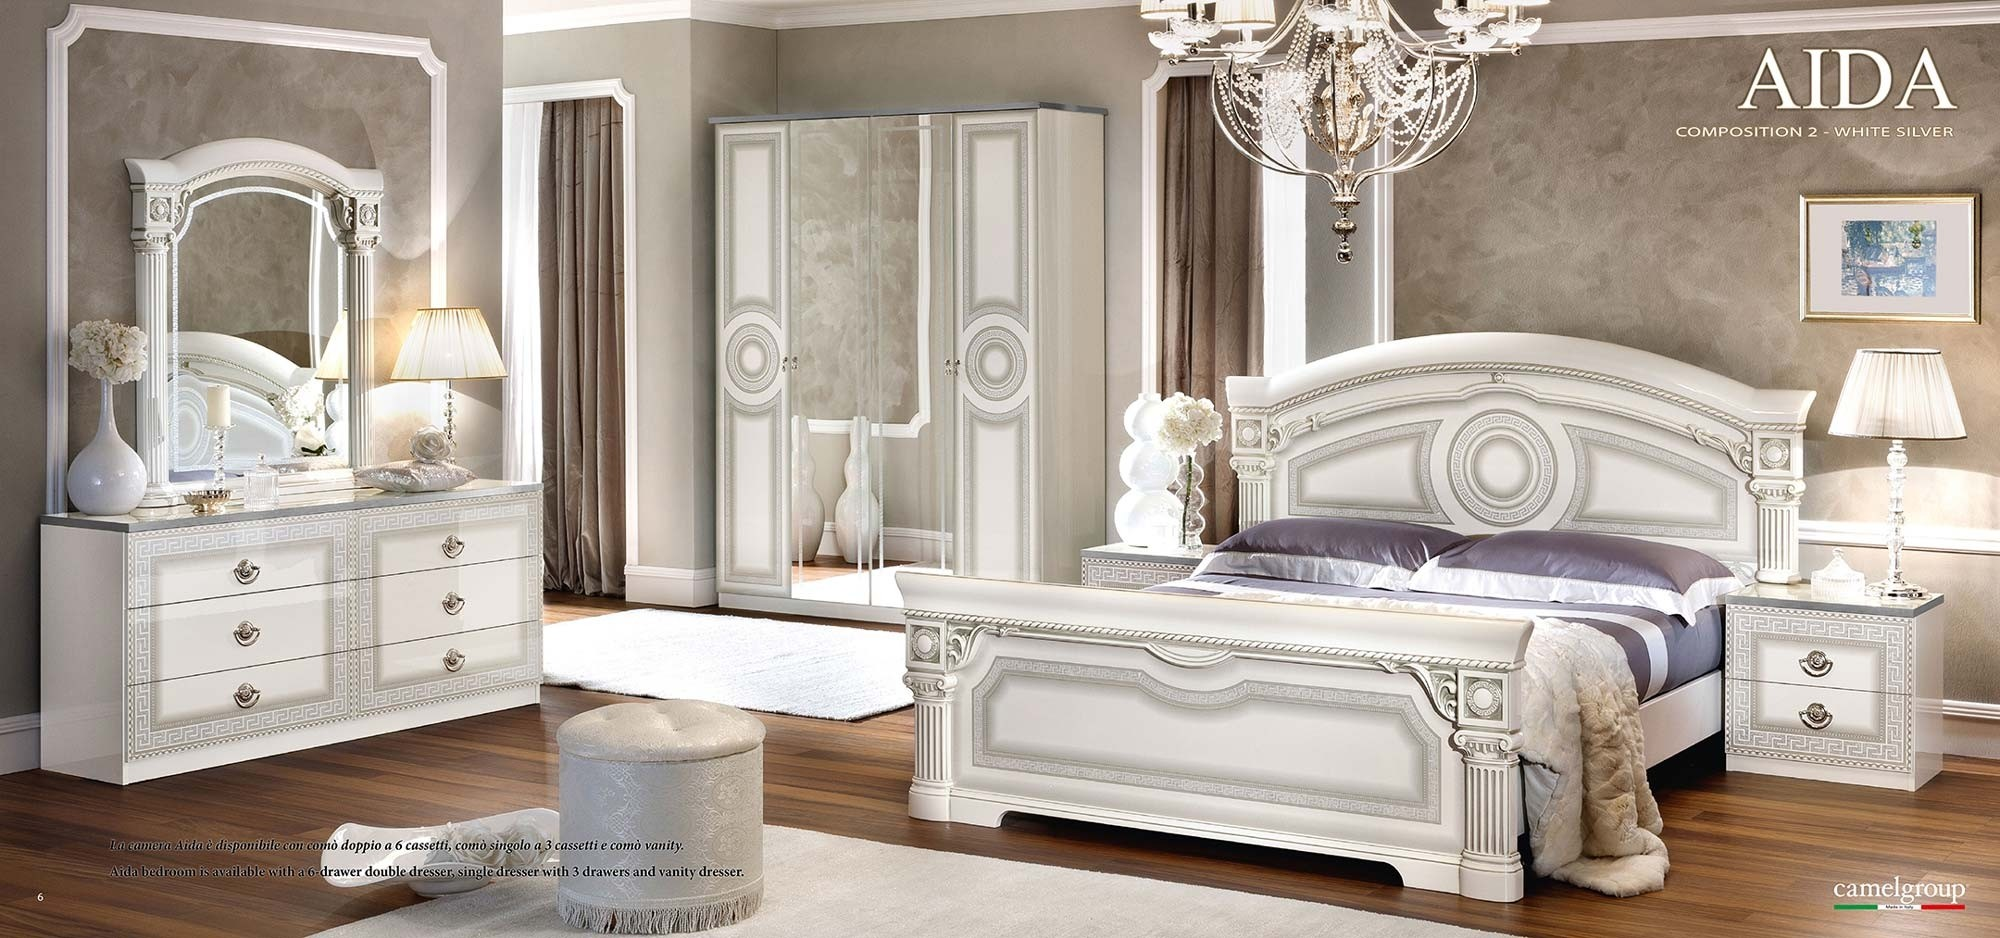 Esf Aida Bedroom Set In White And Silver Italian Finish